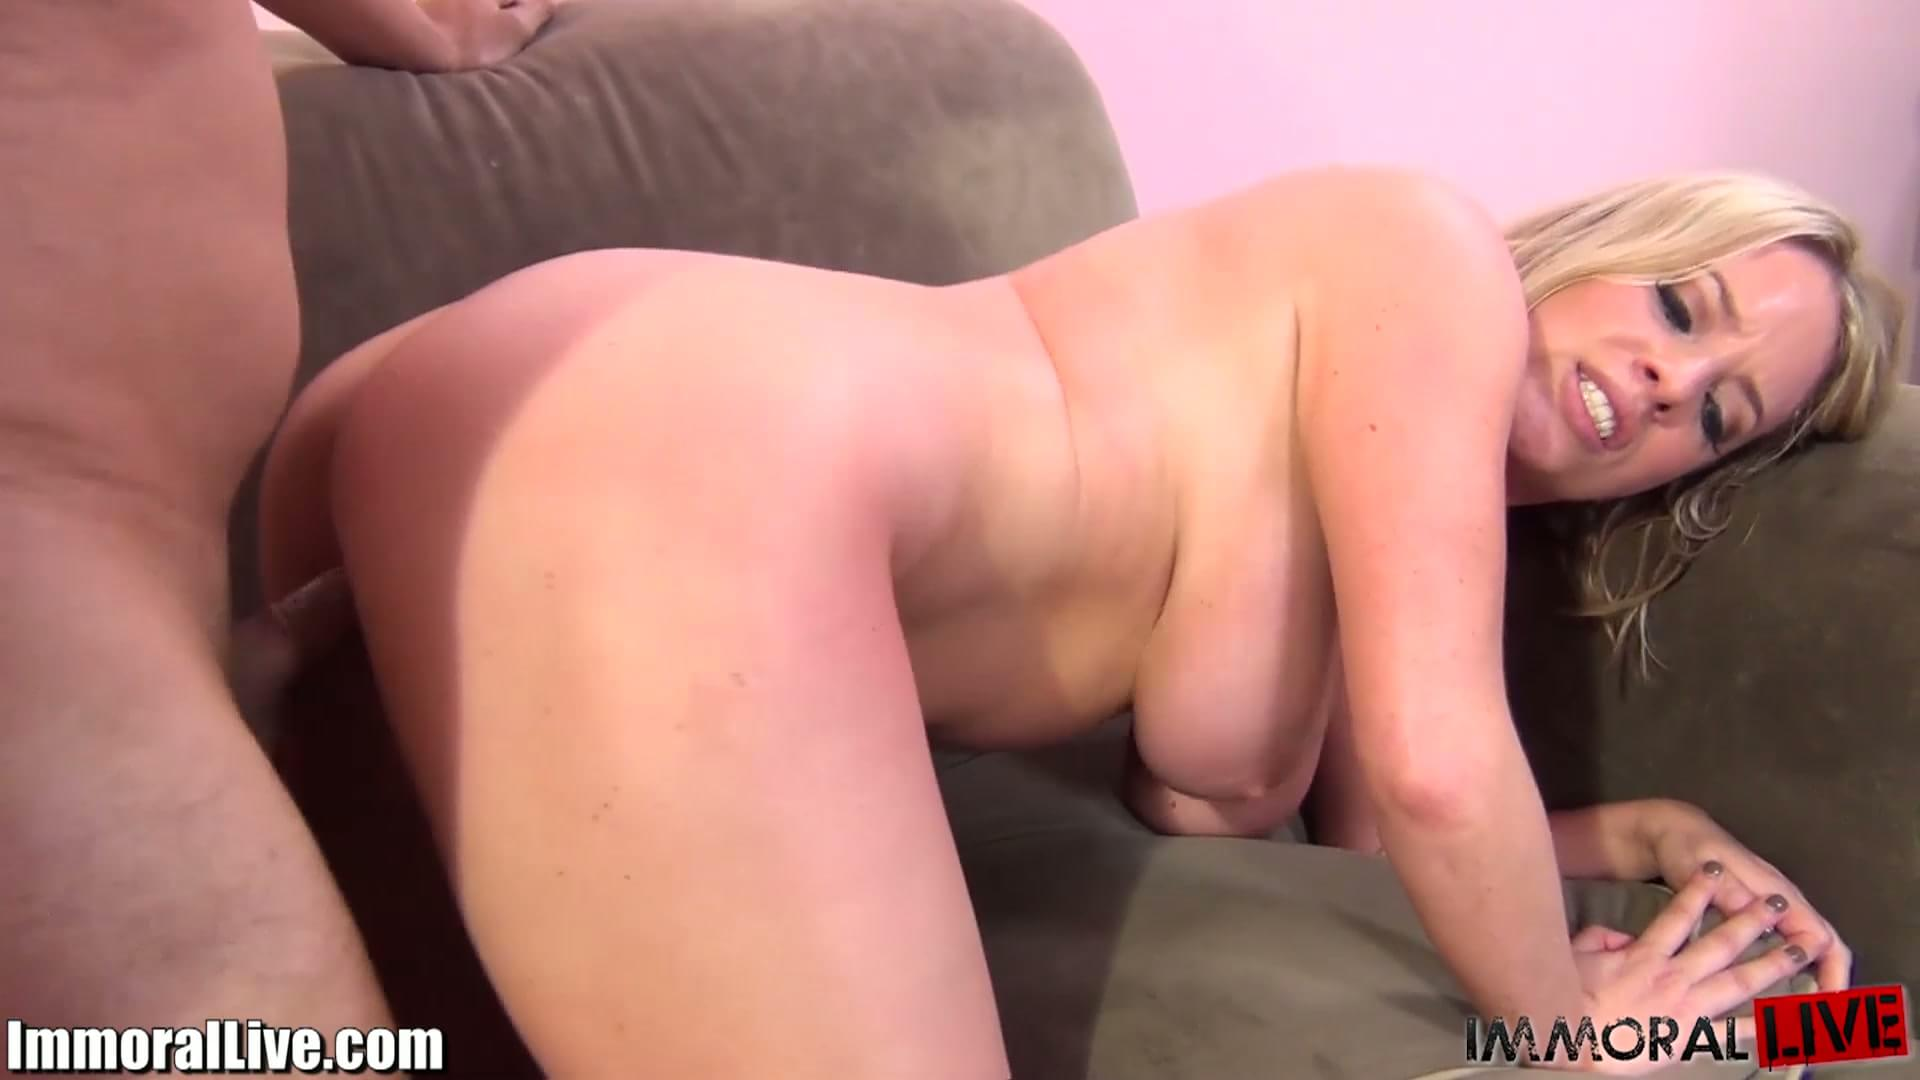 Maggie green pussy fucking squirting dirty talk amp omg more